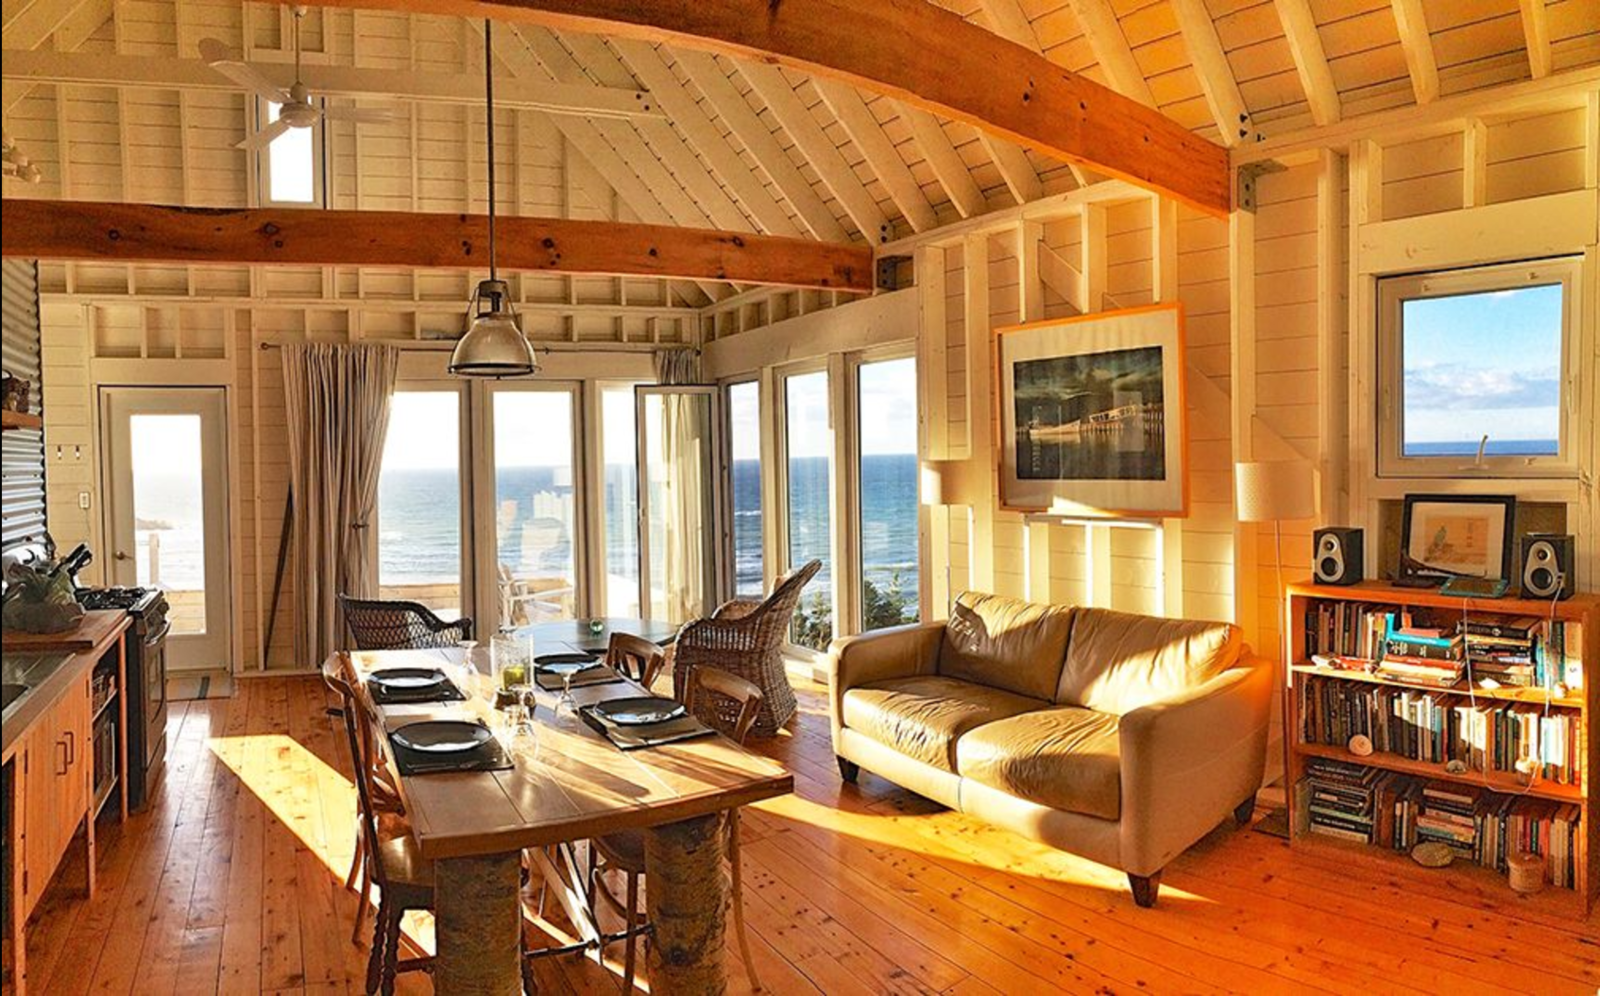 Dining Room, Chair, Table, Medium Hardwood Floor, and Pendant Lighting  Photo 10 of 16 in 8 Outstanding Cabins For Rent in Canada